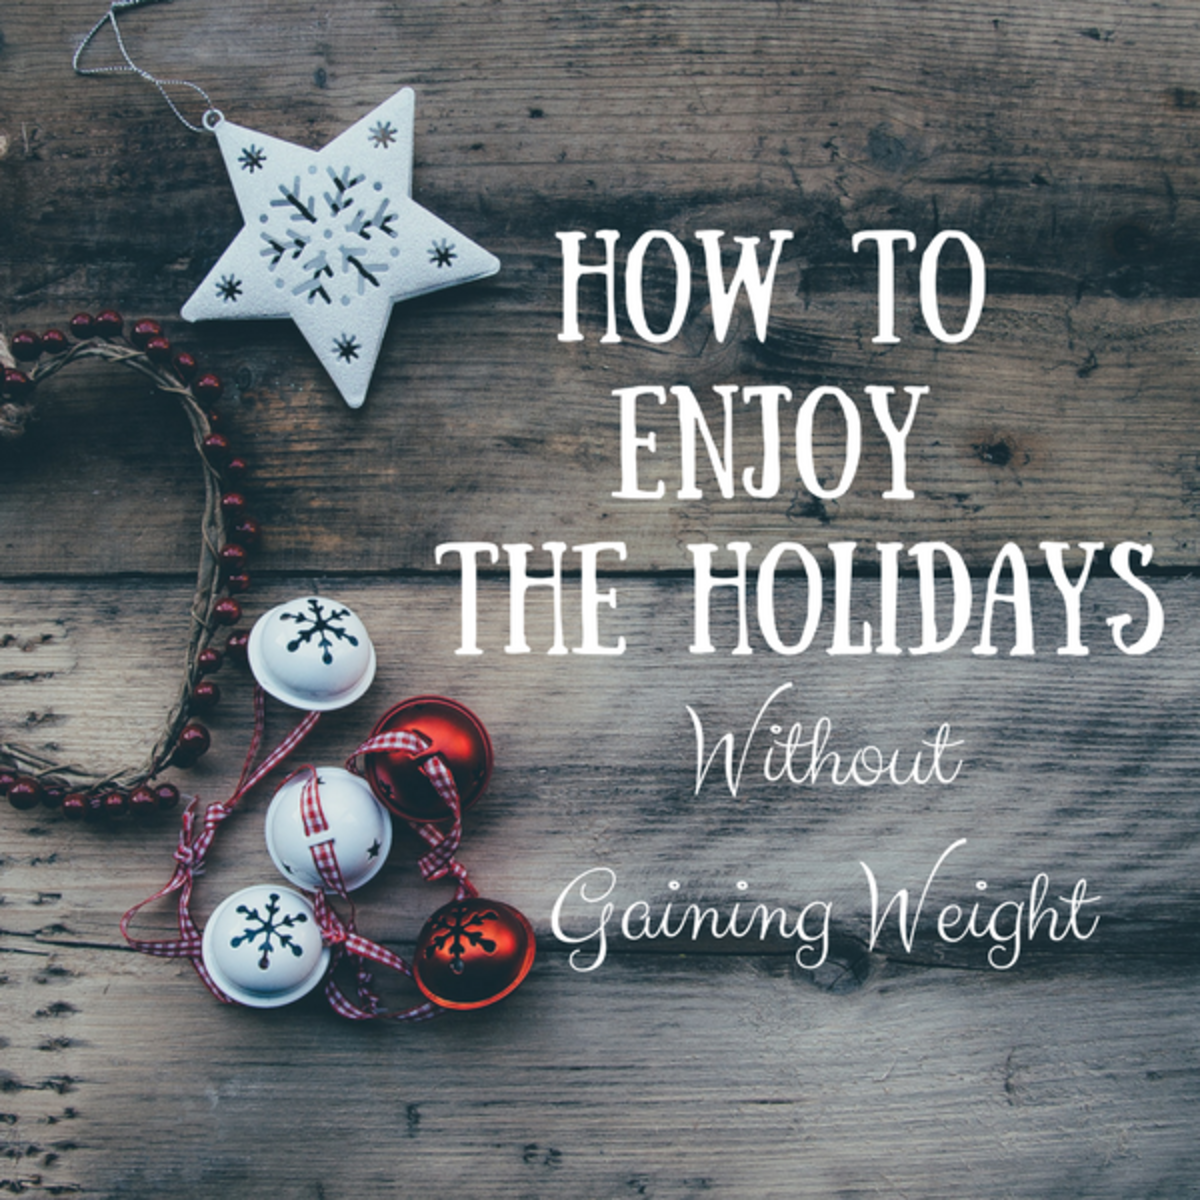 how-to-enjoy-the-holidays-without-gaining-weight